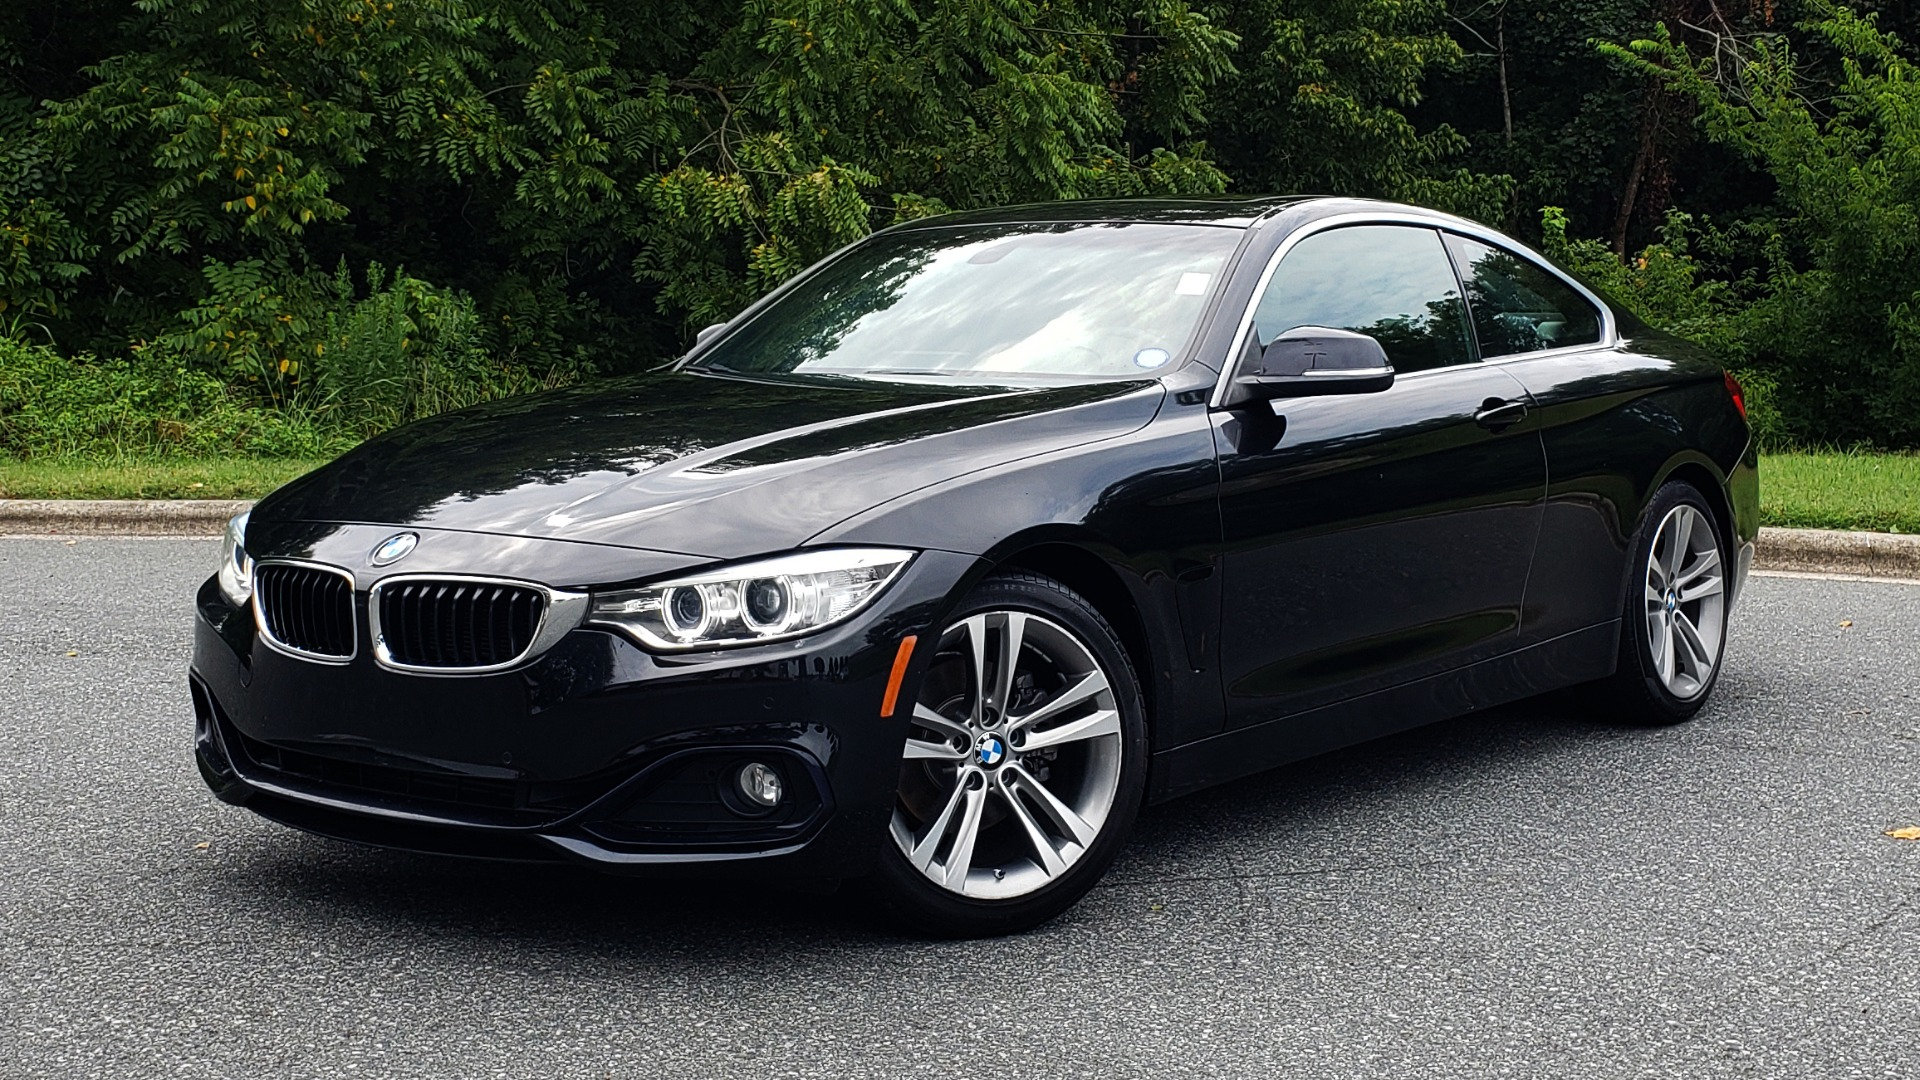 Used 2016 BMW 4 SERIES 428I PREMIUM COUPE / 2.0L / AUTO / NAV / SUNROOF / HEATED SEATS for sale $22,995 at Formula Imports in Charlotte NC 28227 1